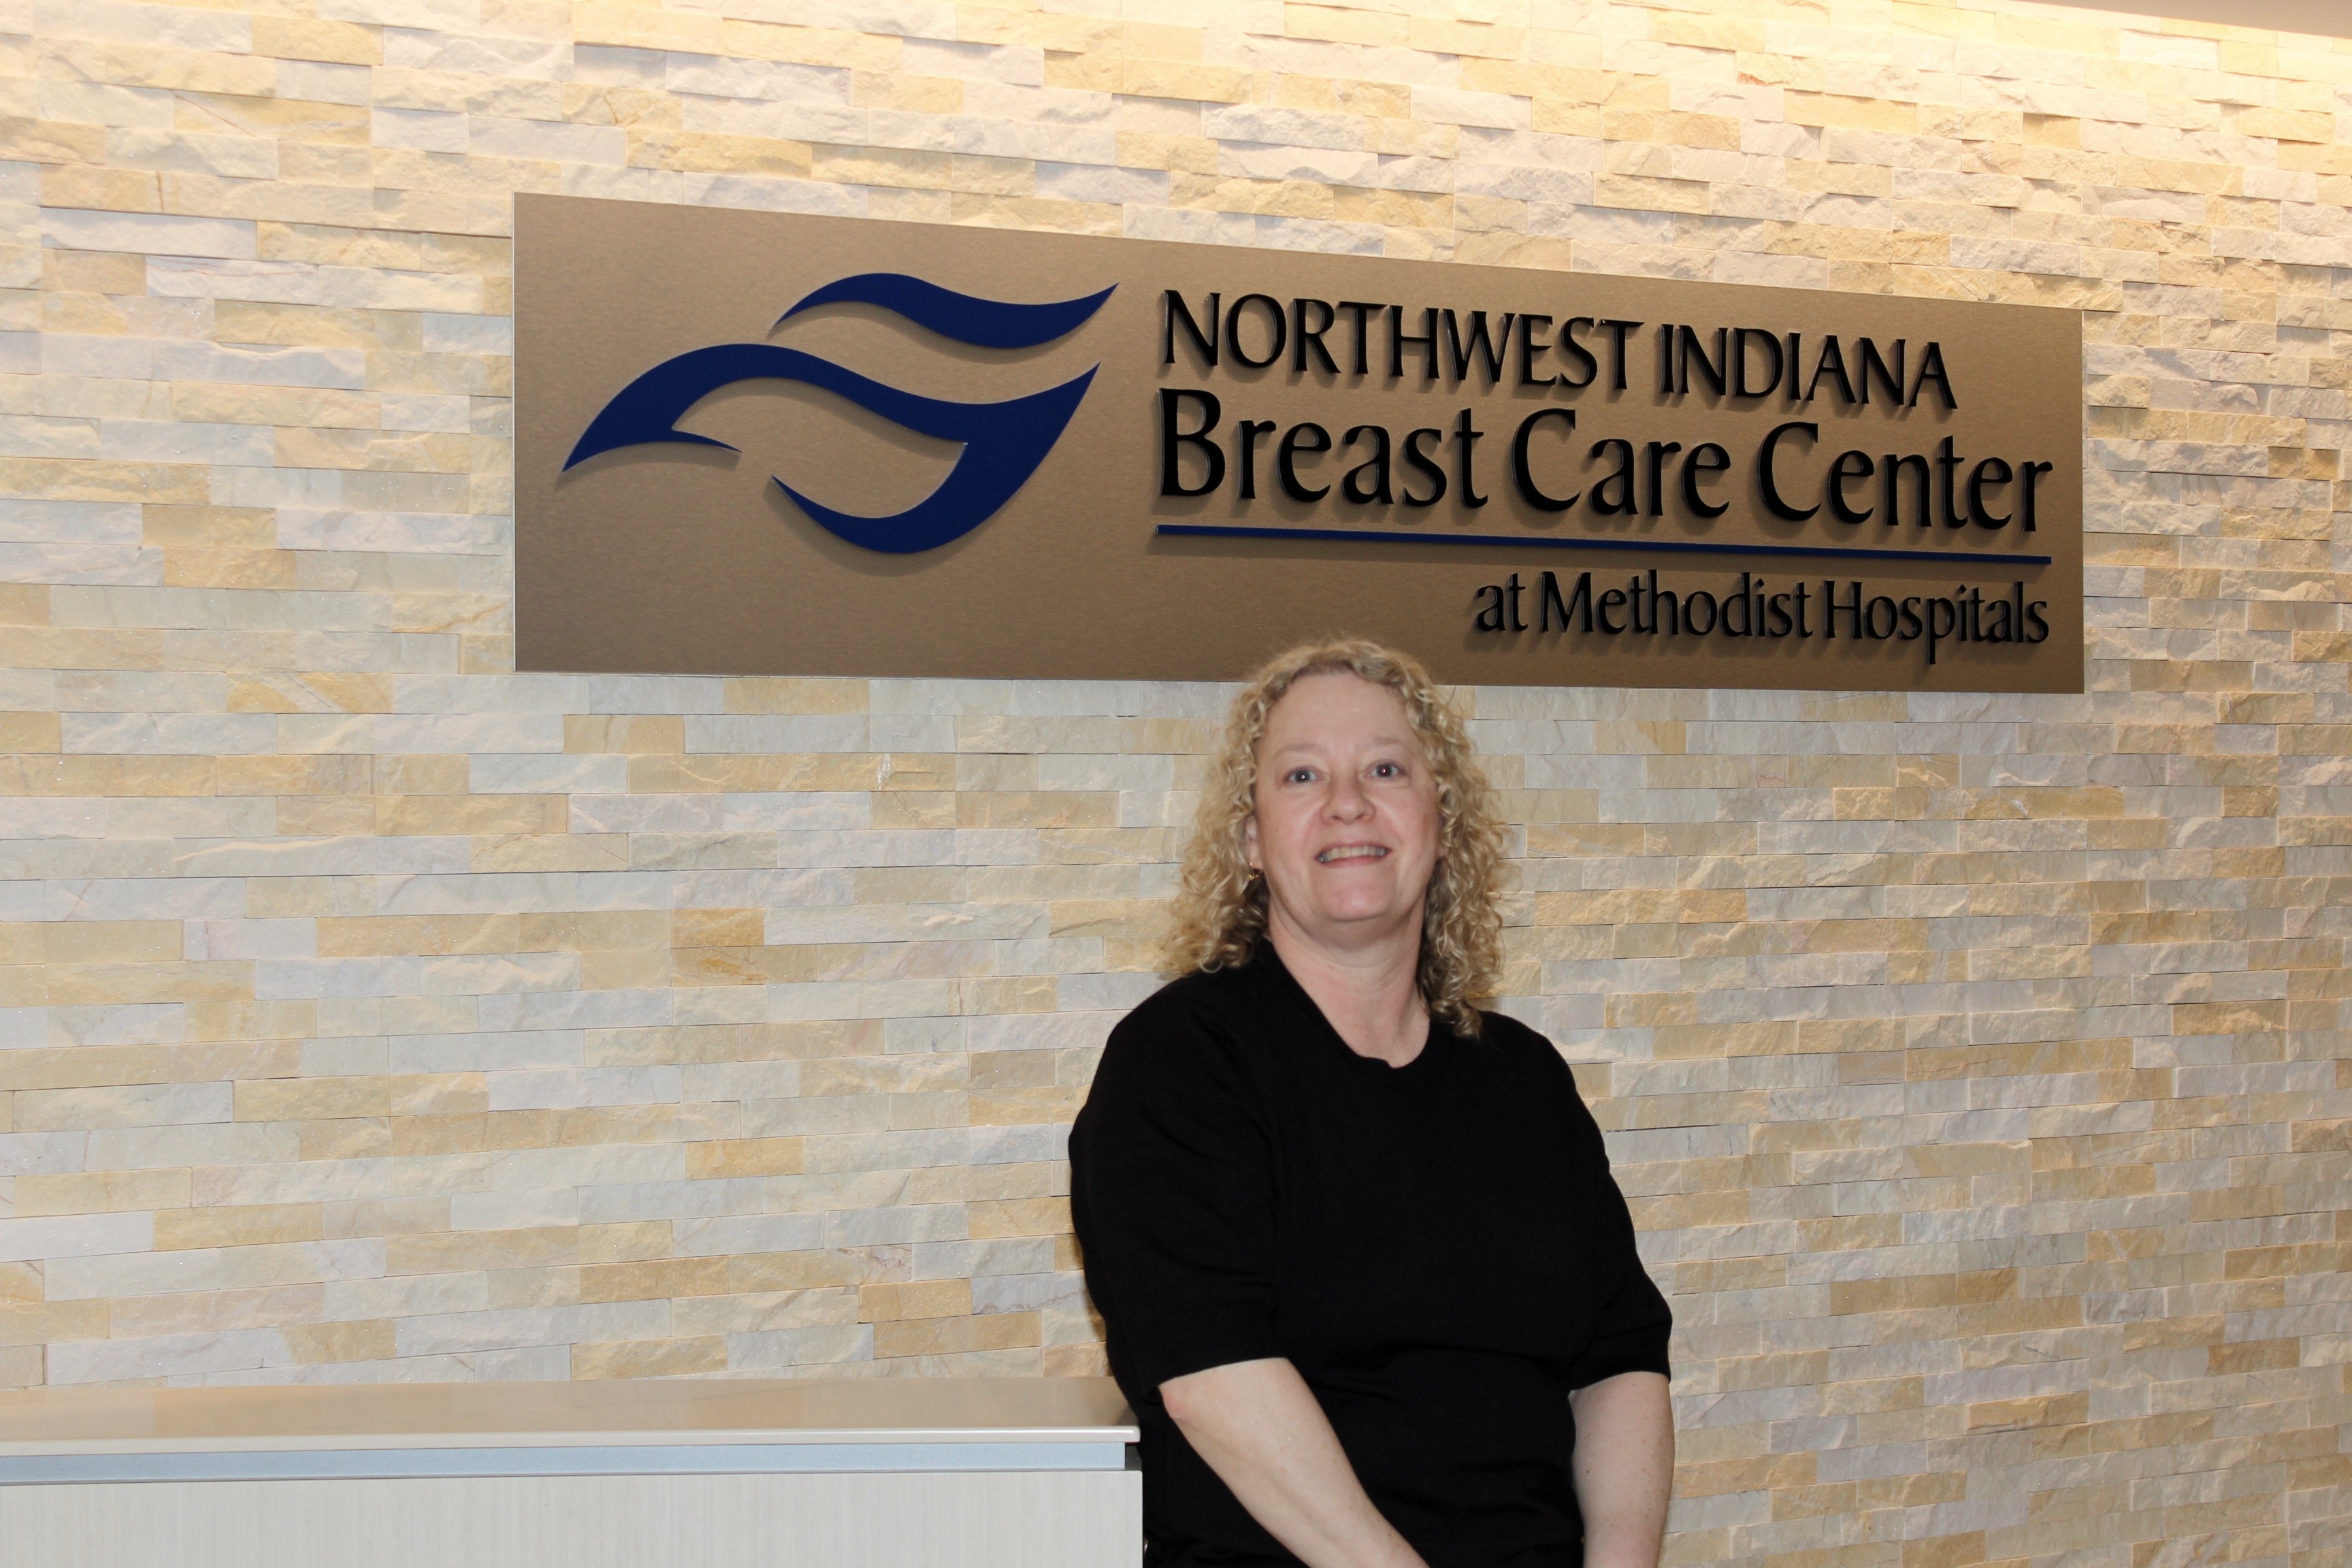 Pam Daly Loves the Innovative Nature of Northwest Indiana Breast Care Center at Methodist Hospitals